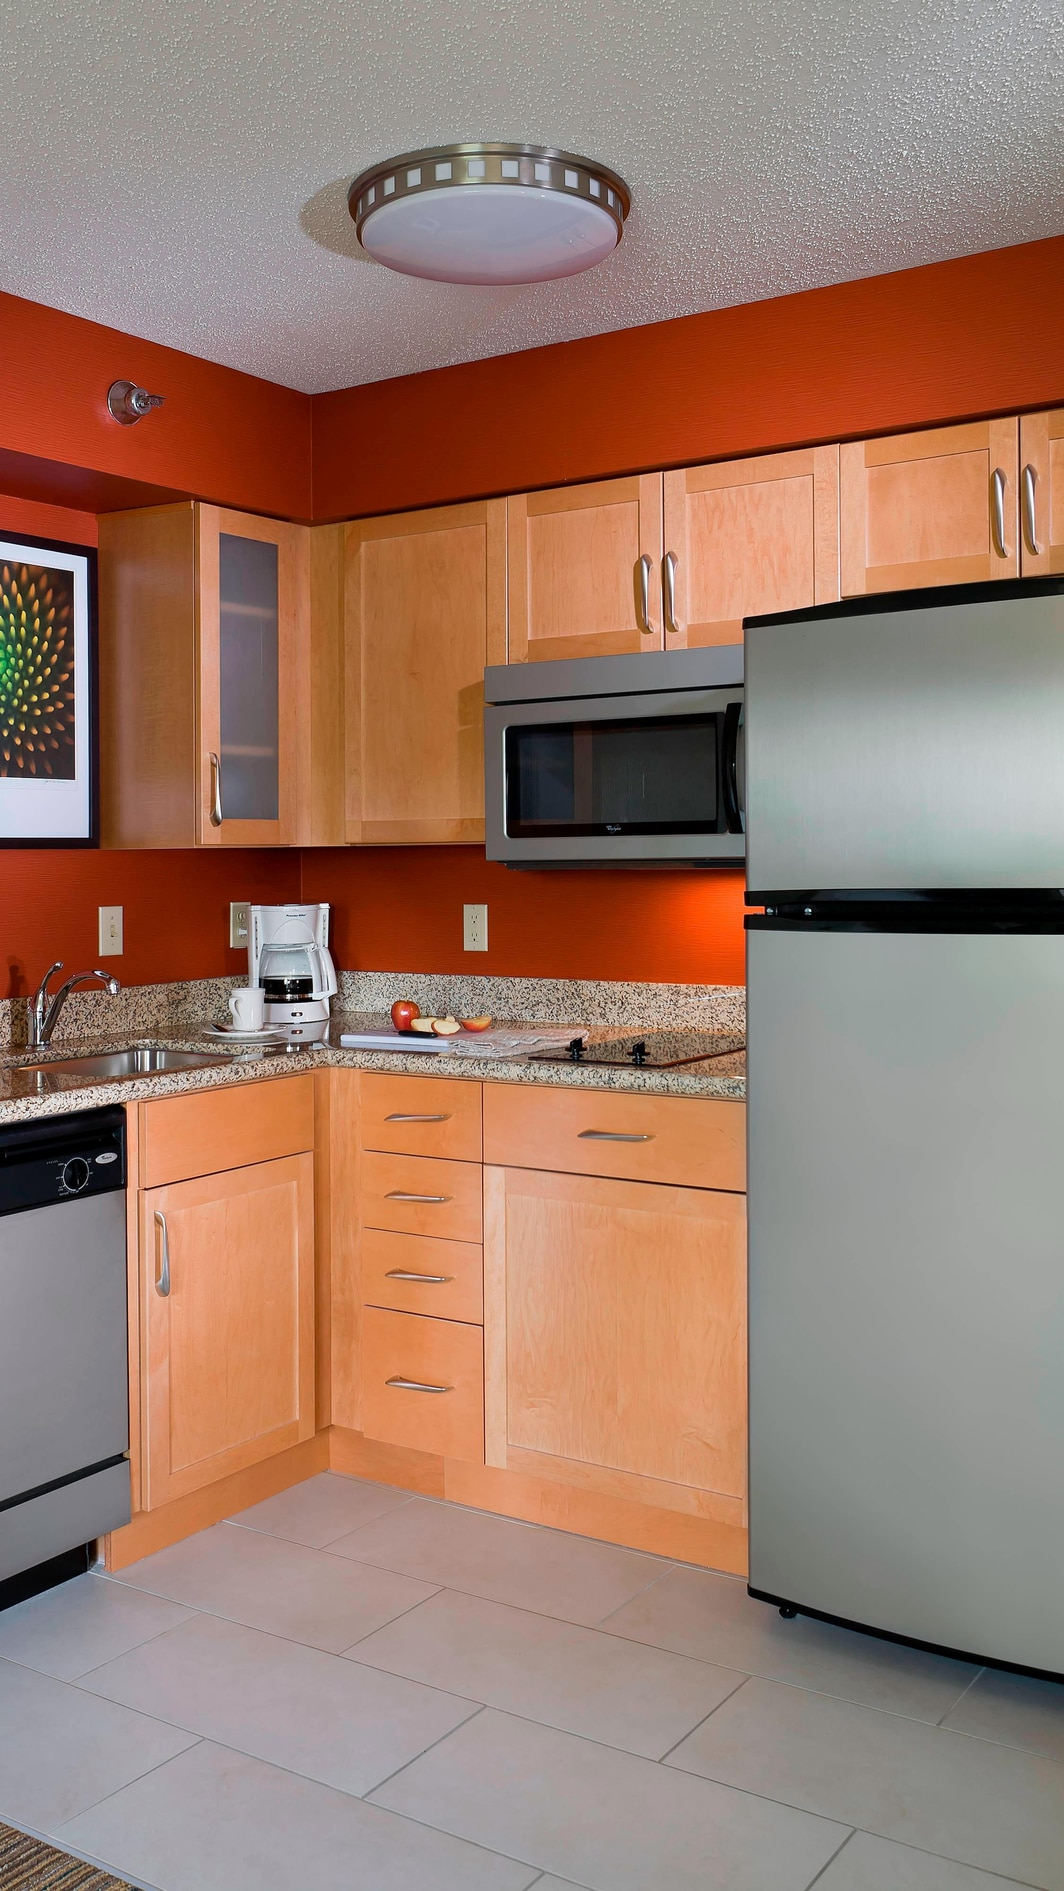 Peoria Arizona Hotel with Kitchenette